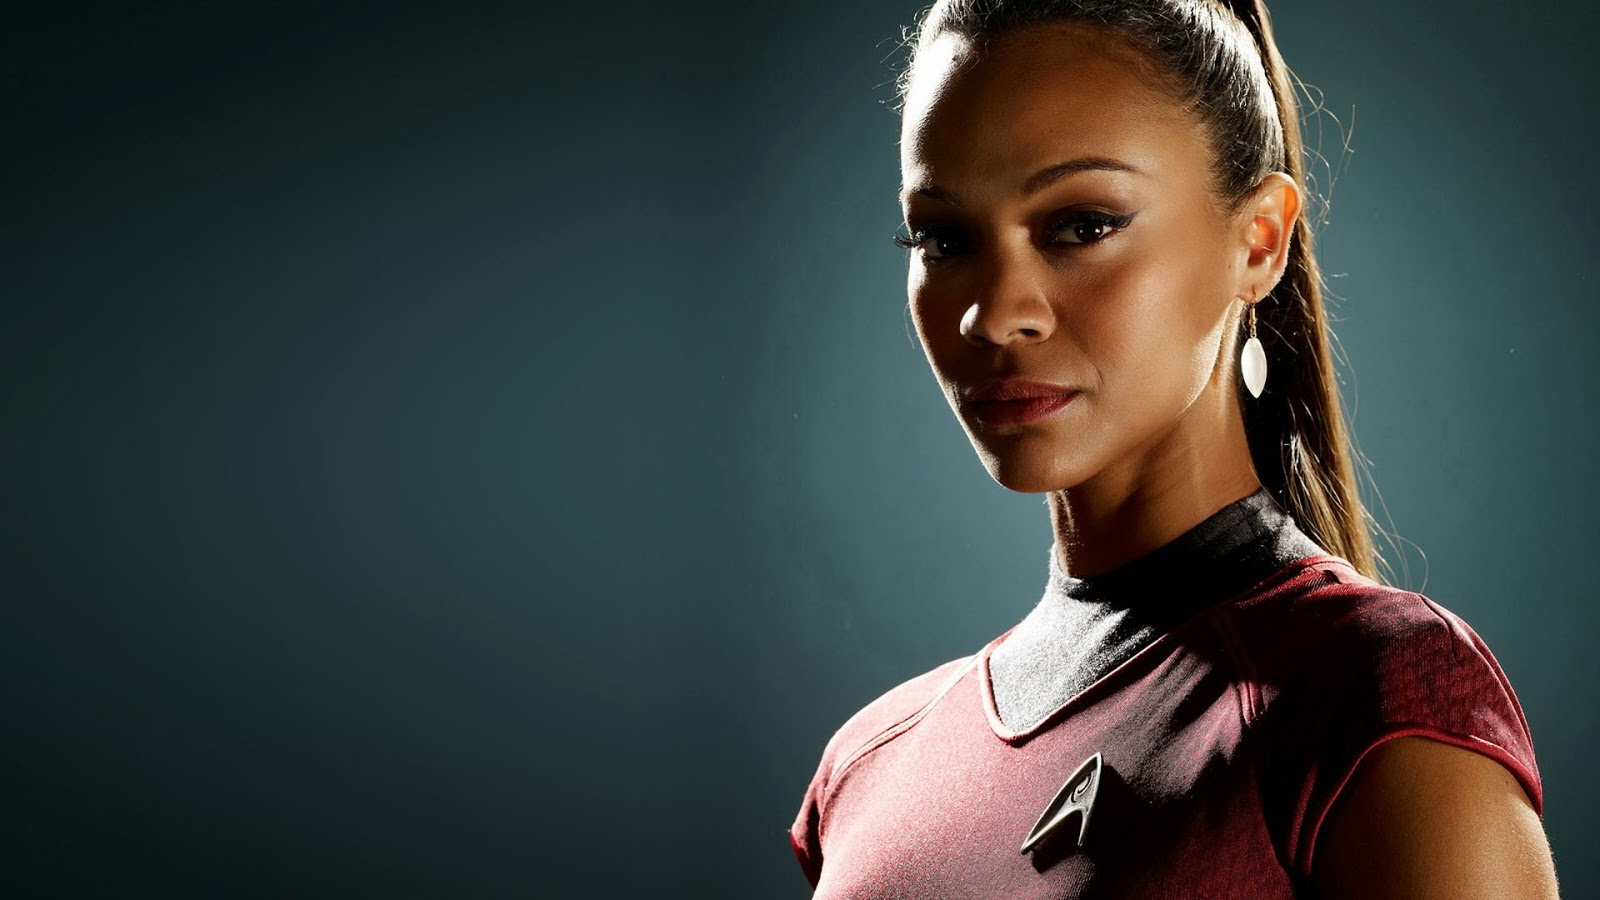 Zoe saldana readystop - Zoe wallpaper ...